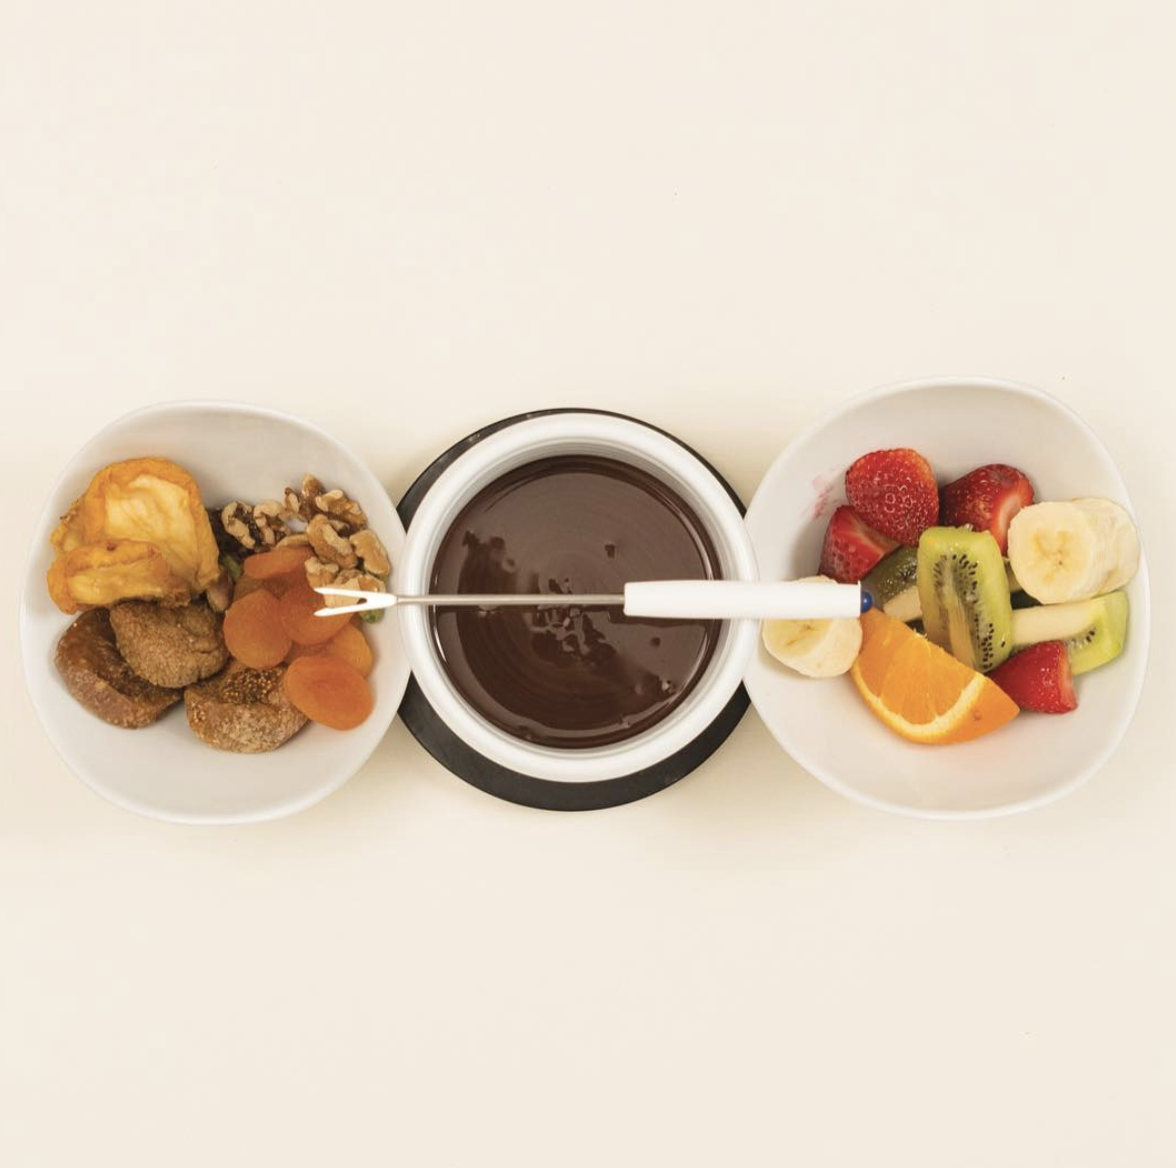 Patagonia Chocolate Fondue served with fruit and nuts - Patagonia Chocolates are chocolatiers, ice cream makers and coffee roasters with four cafes located in the Southern Lakes of New Zealand. There chocolate treats are award winning and not to be missed.